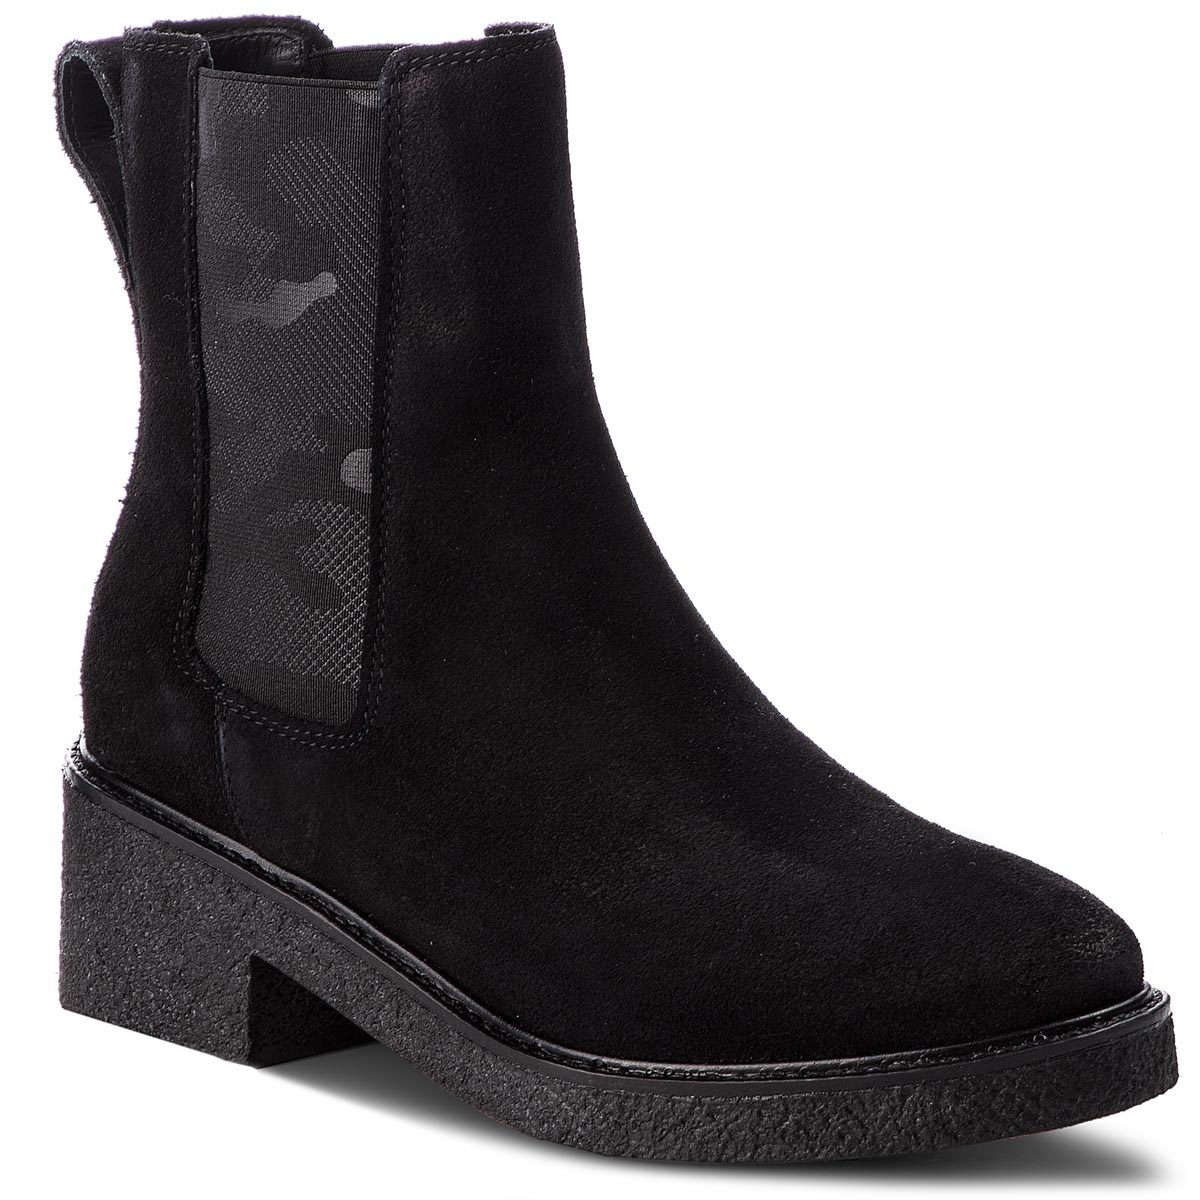 Botki TOMMY HILFIGER - Crepe Mid Heel Boot Suede FW0FW03046  Black 990